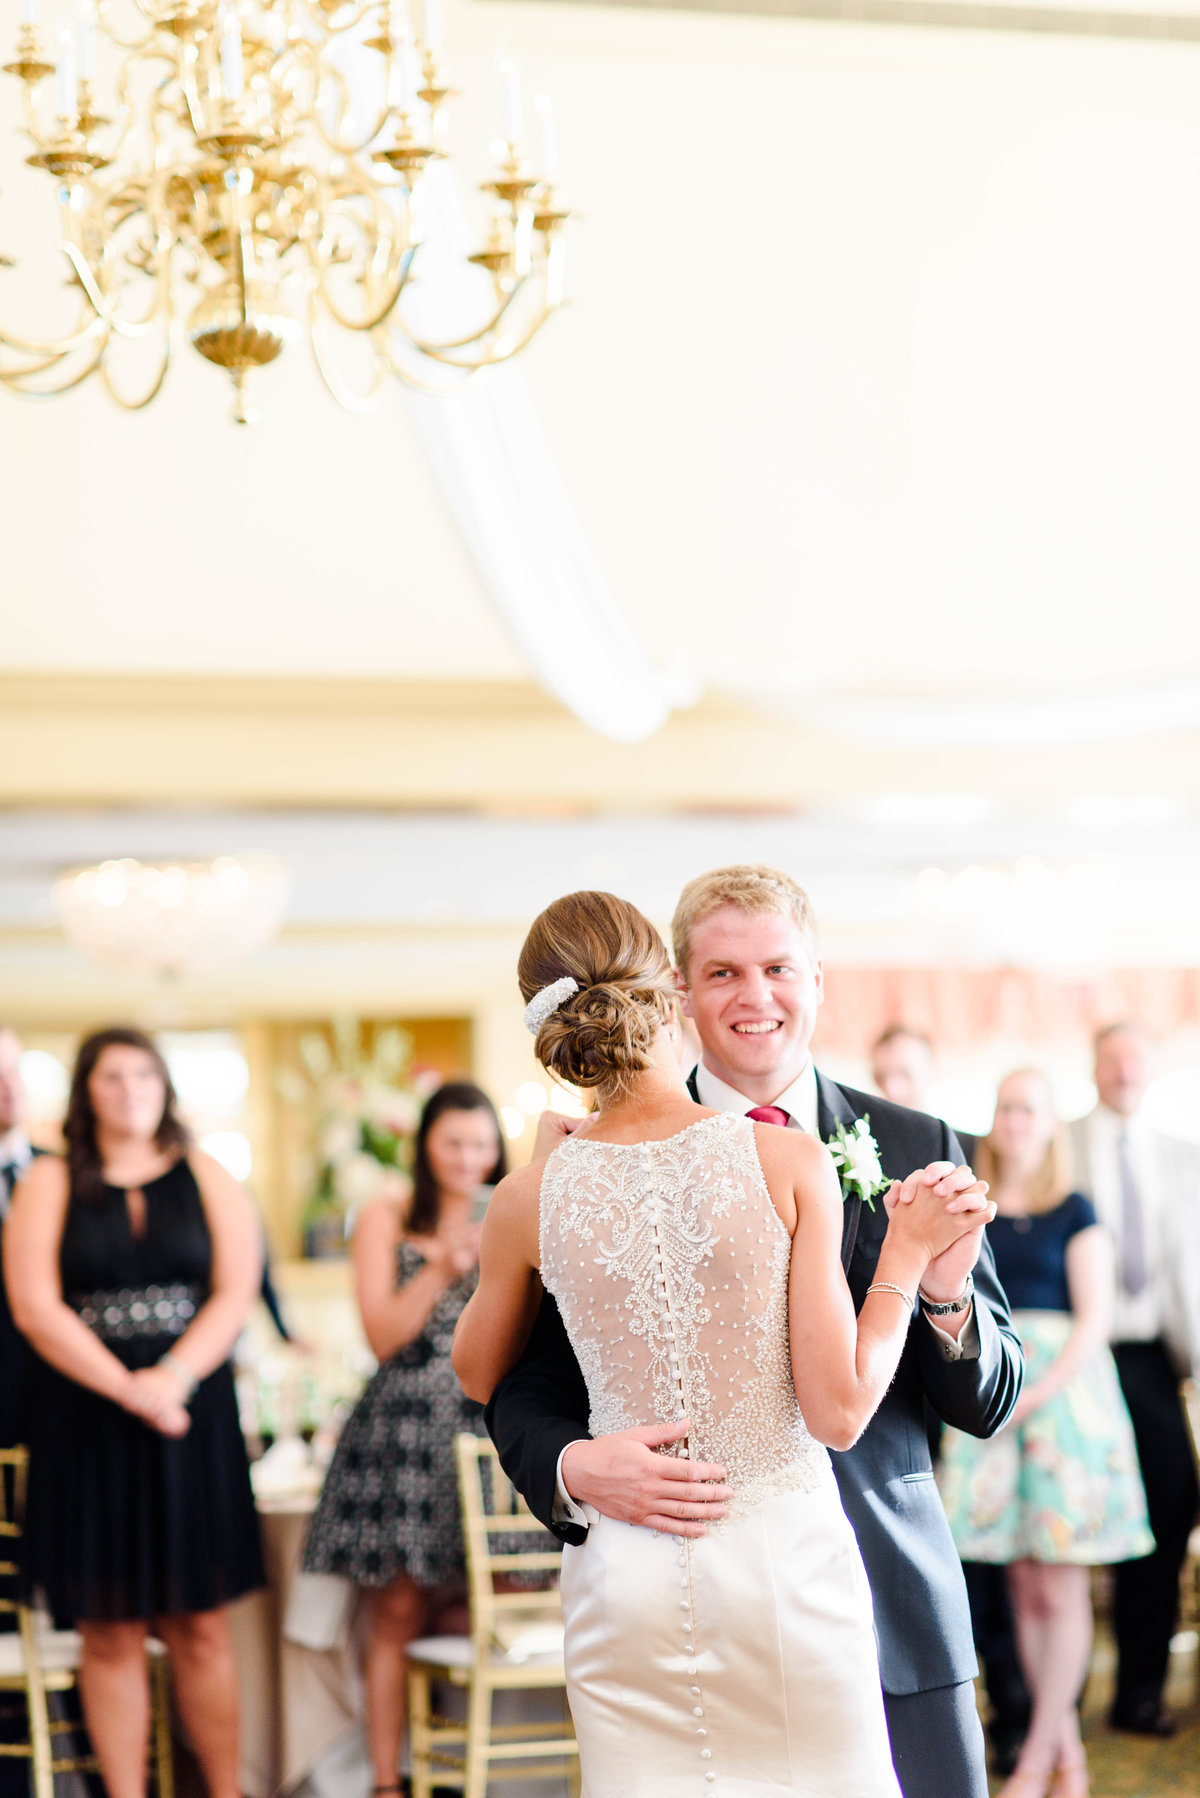 MB-valleybrooke-country-club-wedding-photos-138